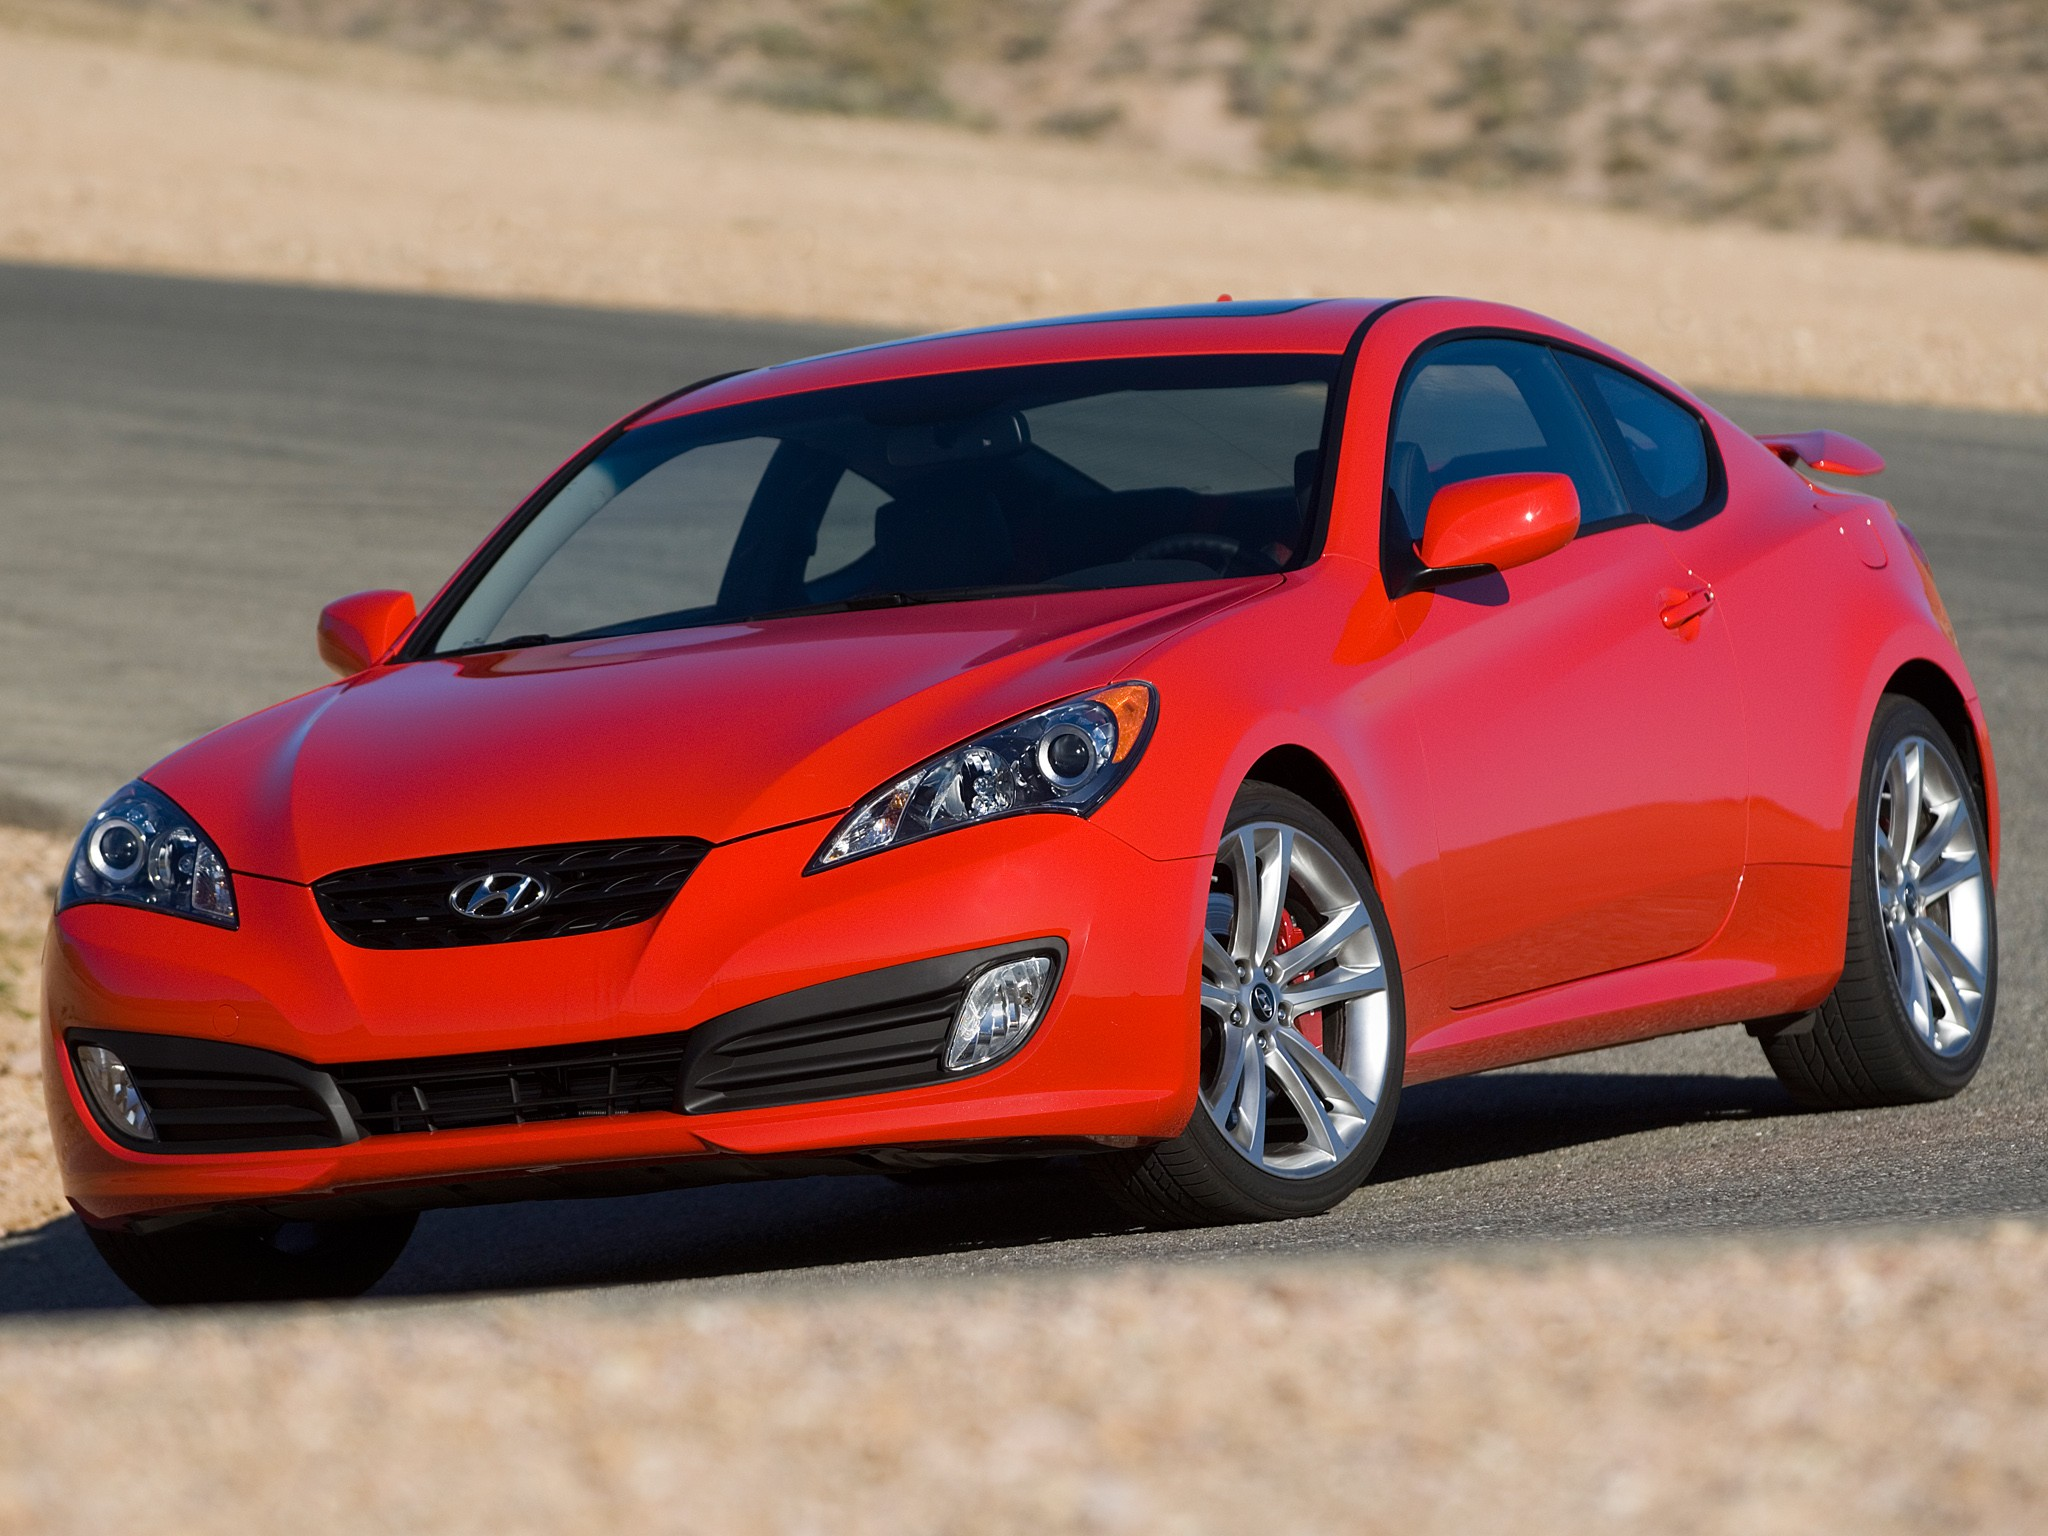 hyundai-genesis-coupe-kicks-the-bucket-successor-in-the-offing_10